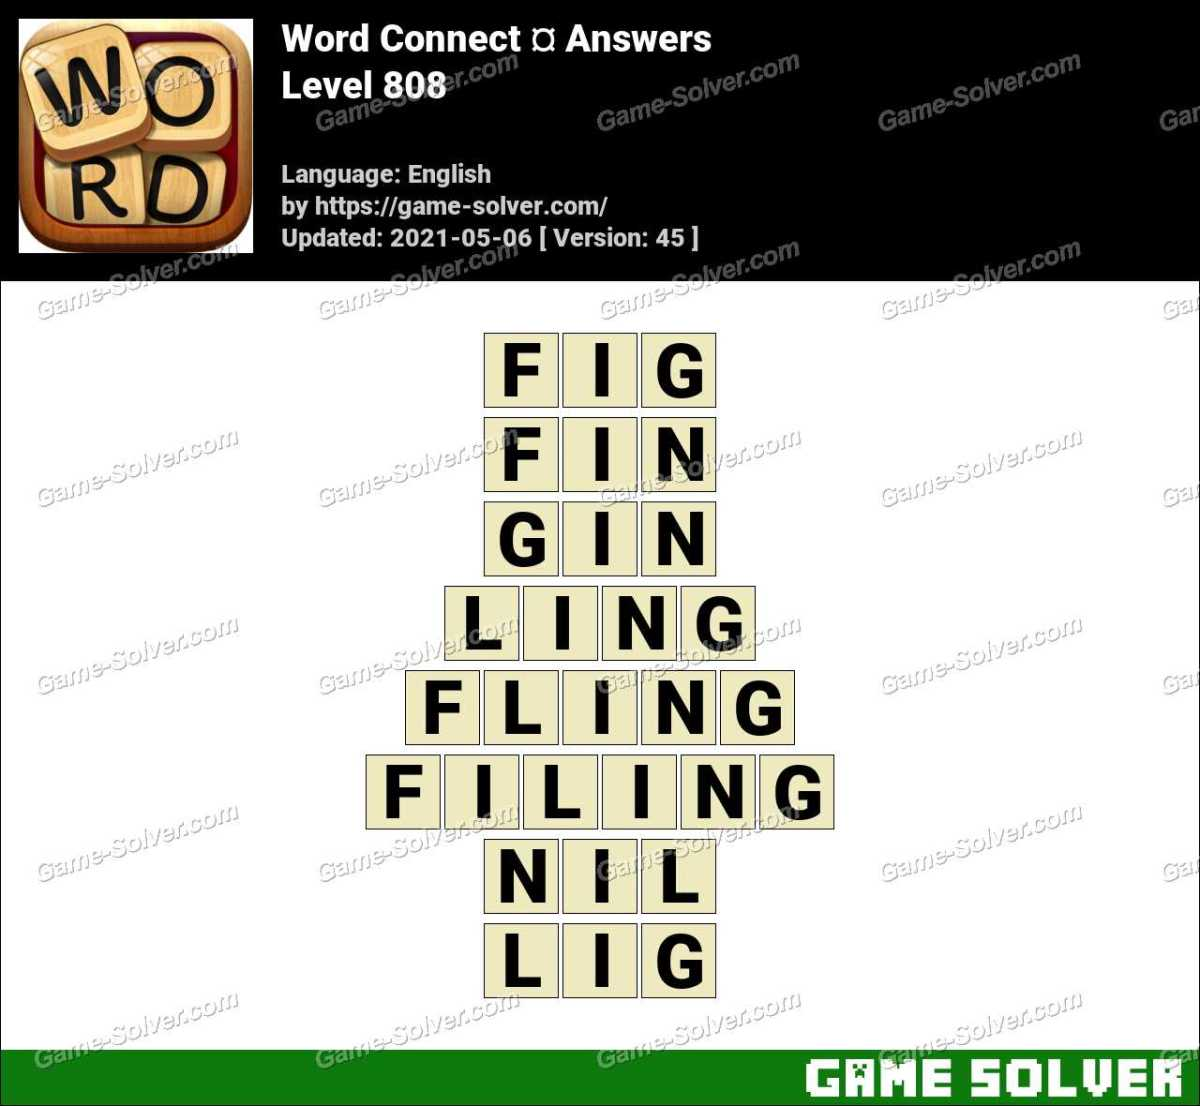 Word Connect Level 808 Answers